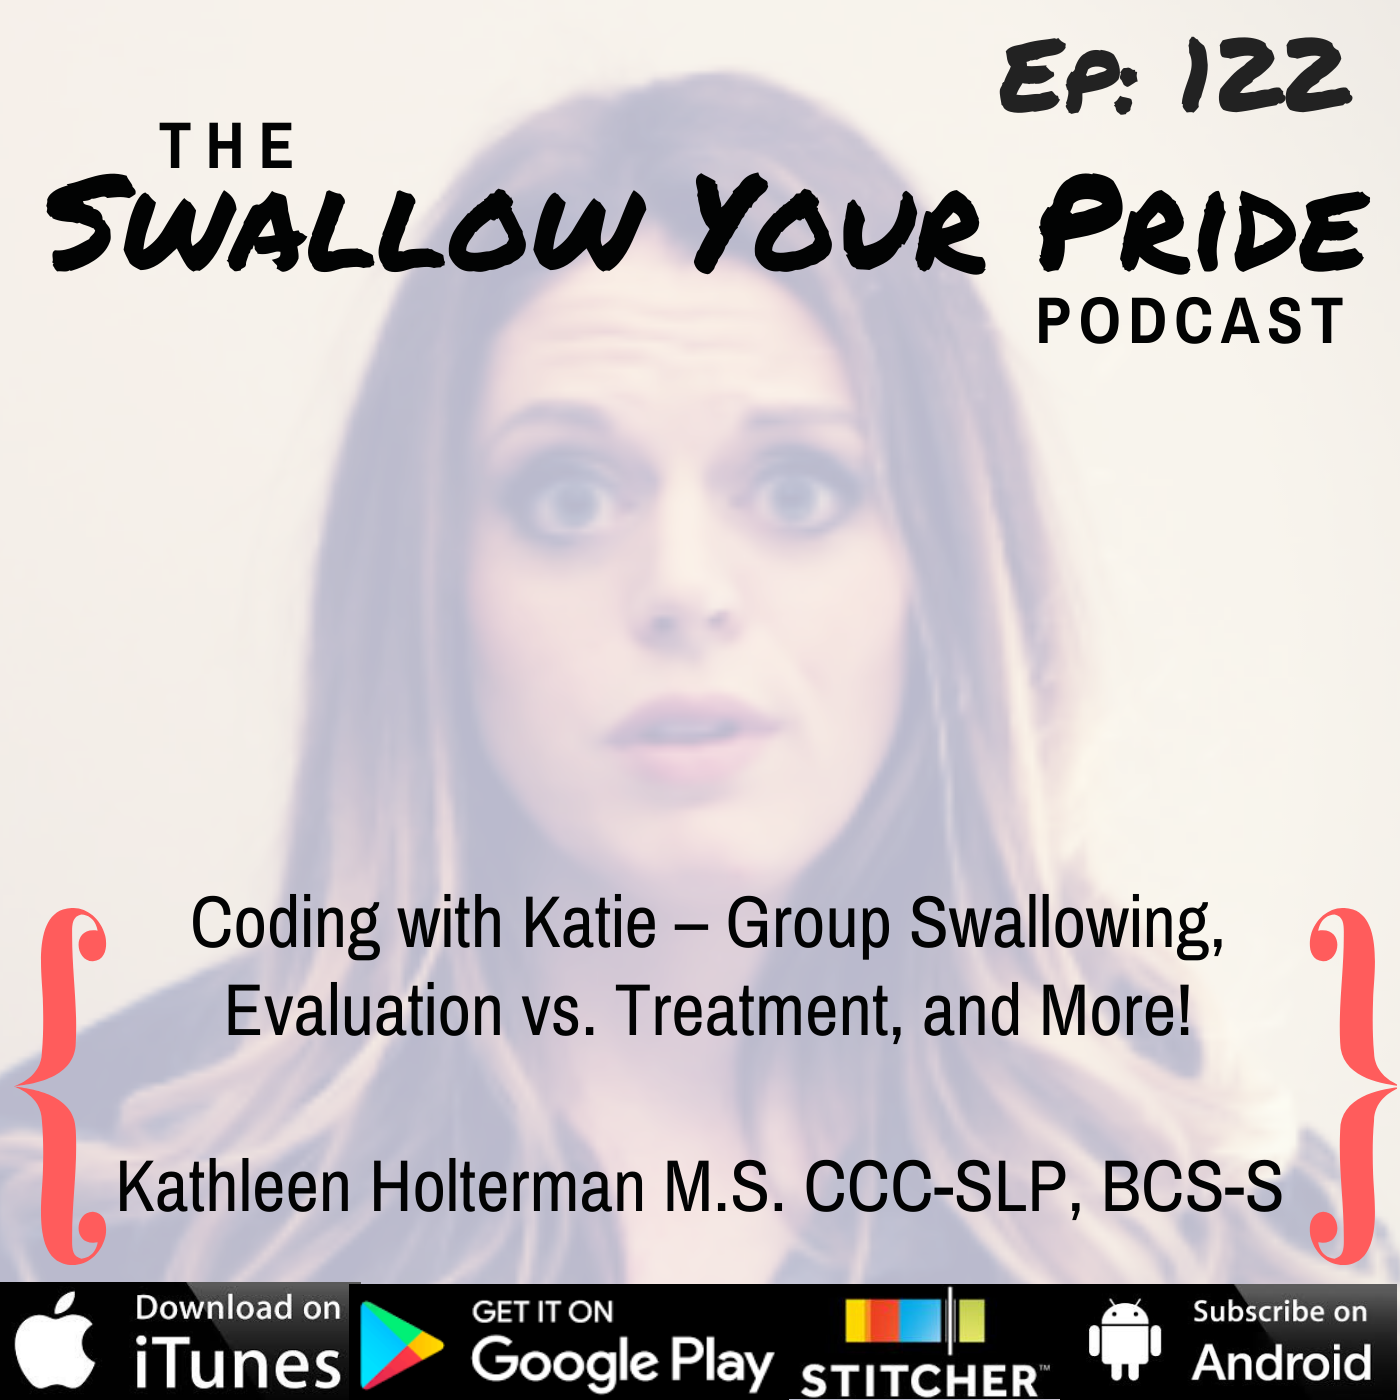 122 – Kathleen Holterman M.S. CCC-SLP, BCS-S – Coding with Katie – Group Swallowing, Evaluation vs. Treatment, and More!